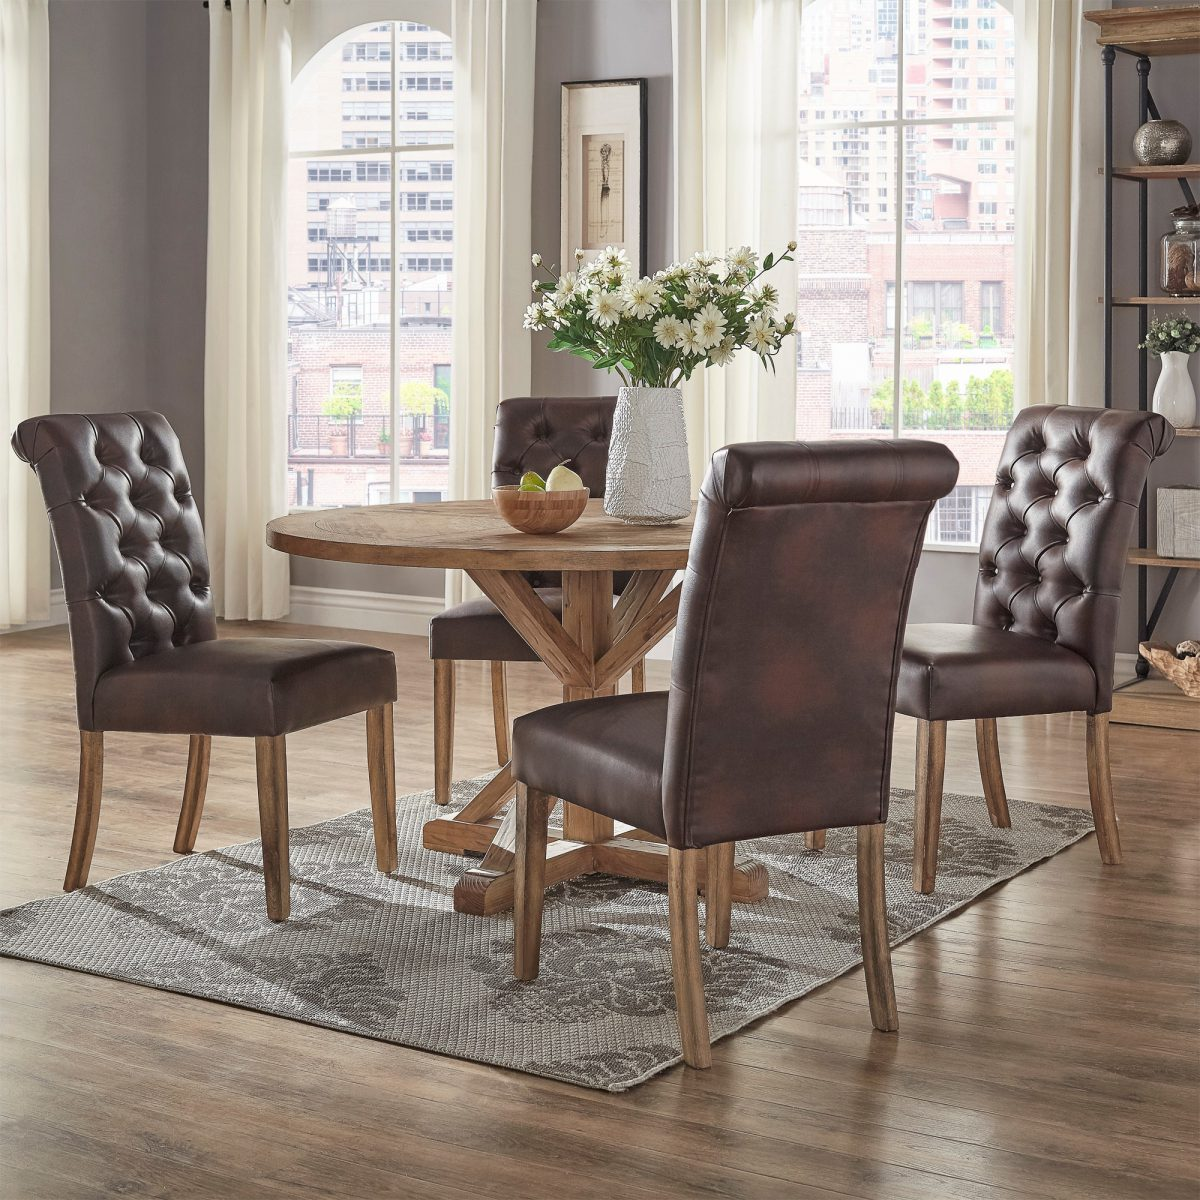 Oak Round Seat Dining Chair